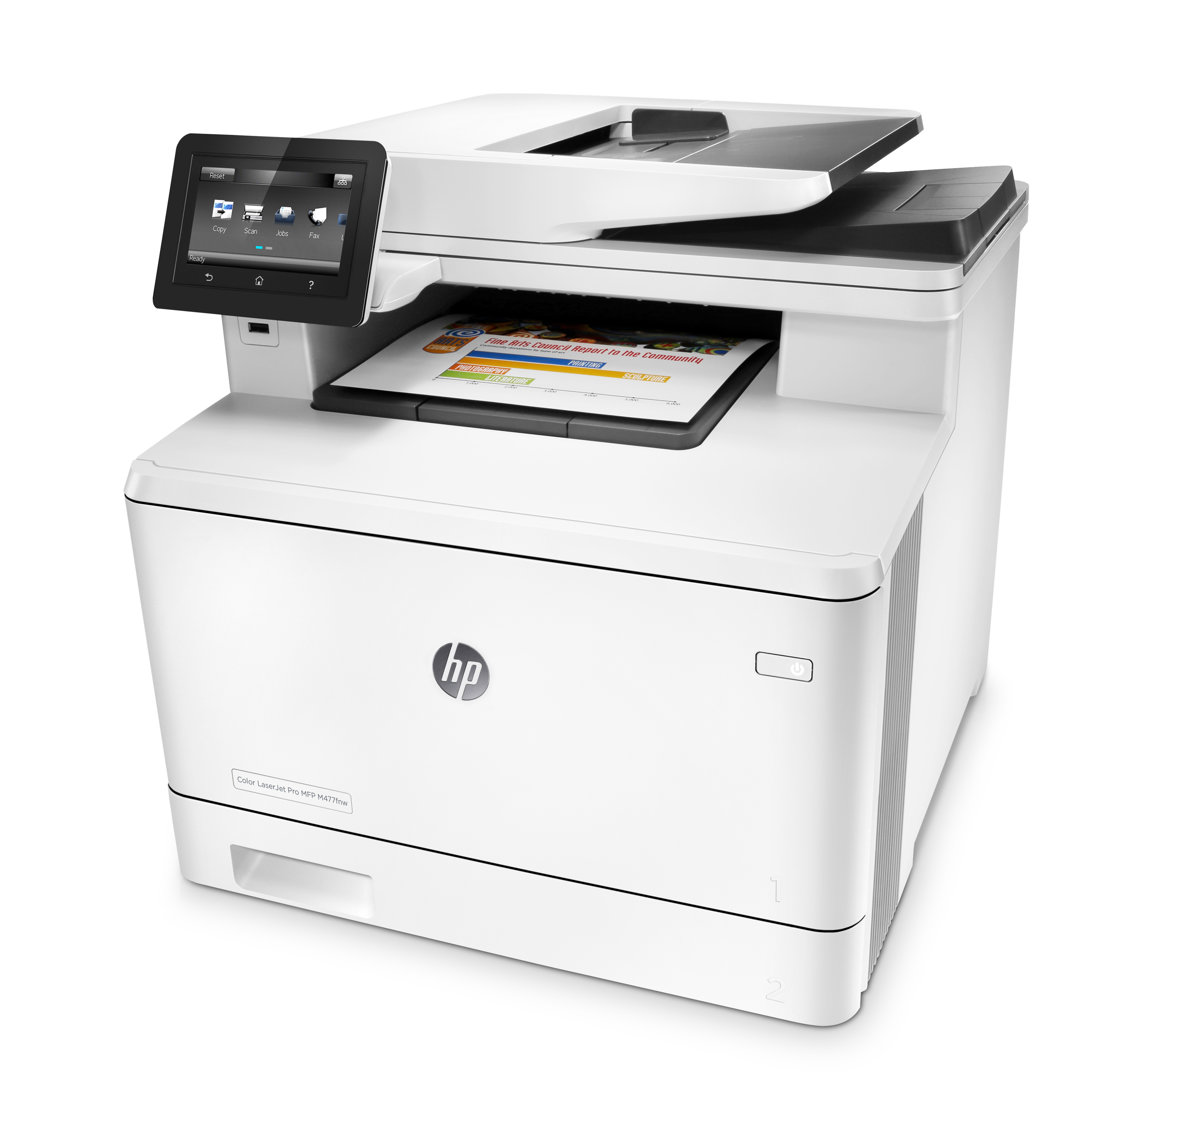 Coloring online no printing - Hp Laserjet Pro M477fnw Wireless Color